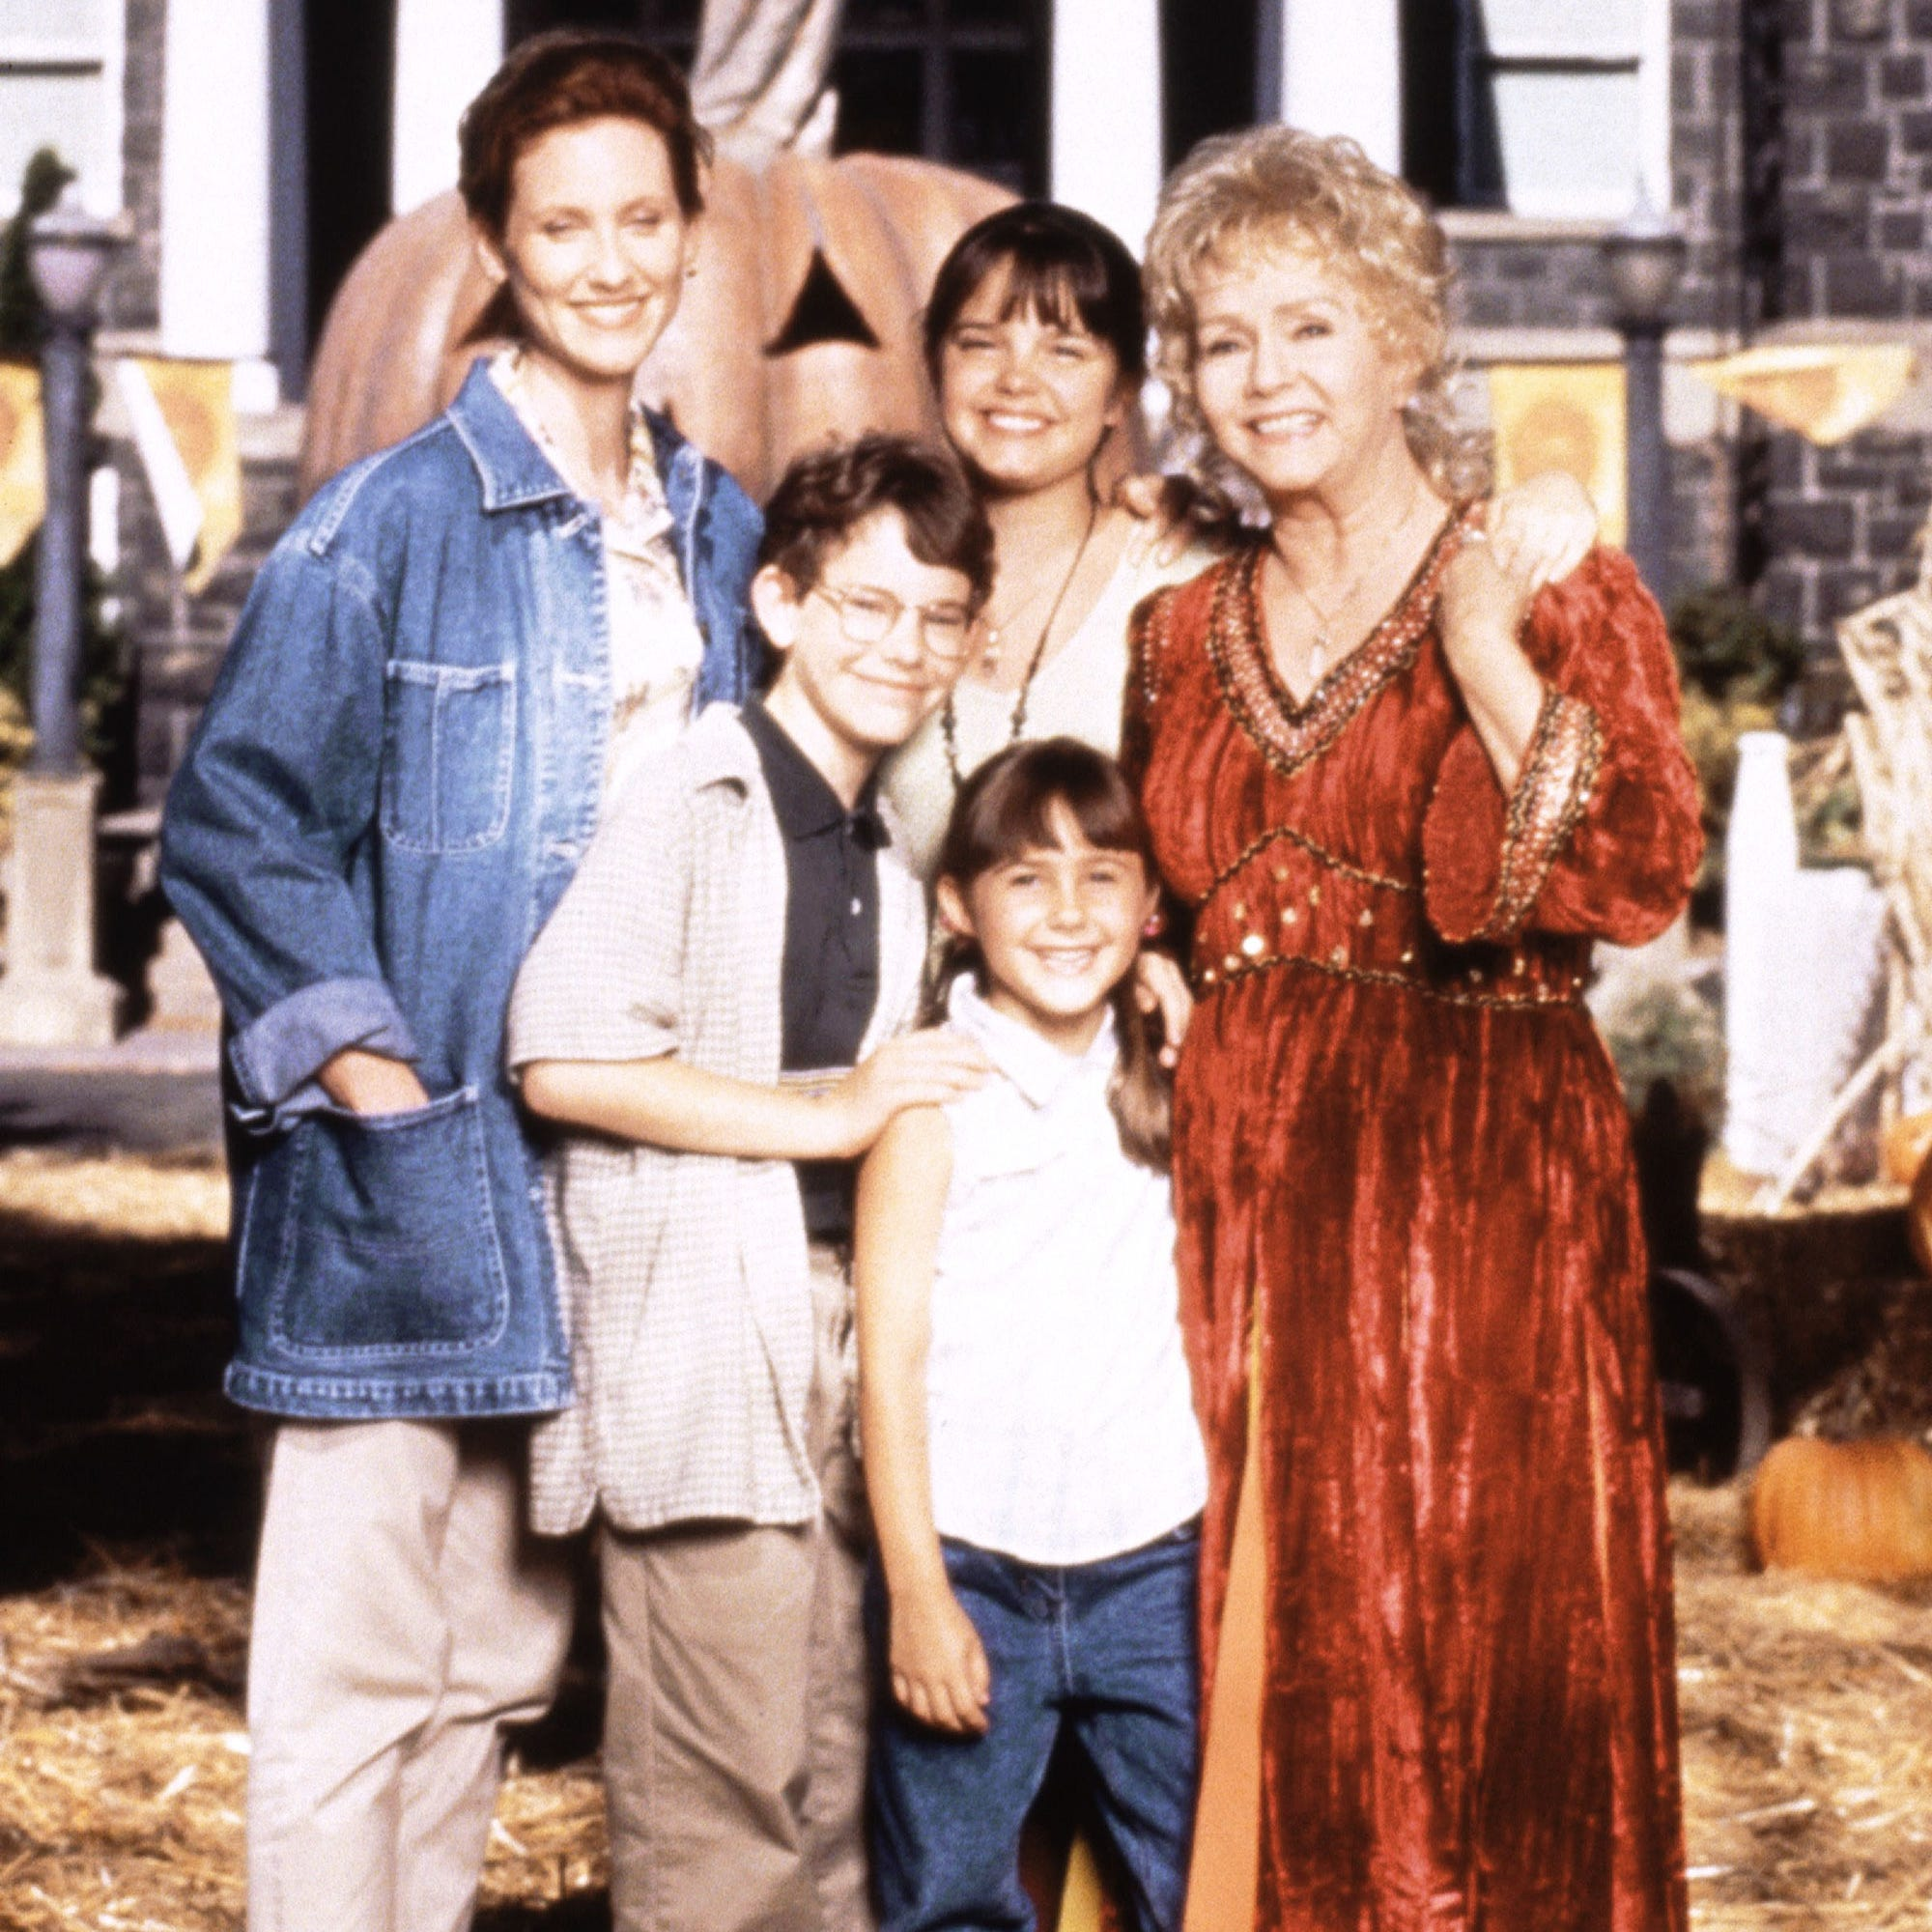 halloweentown cast, movie history with kimberly j brown